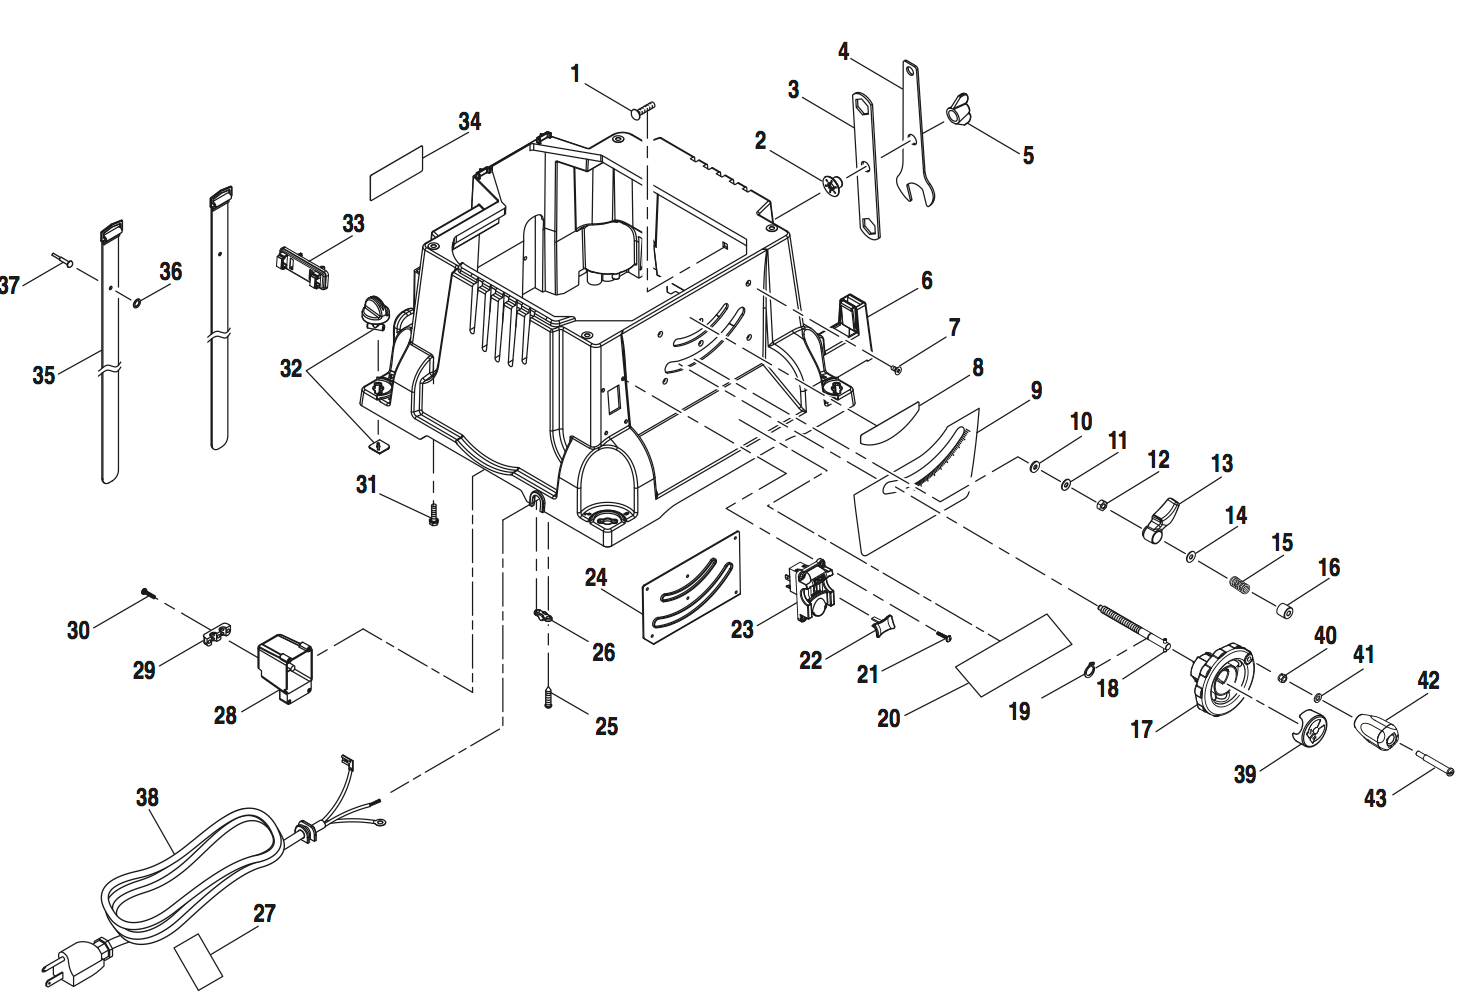 hight resolution of ryobi table saw switch wiring diagram 37 wiring diagram table saw dw744 motor de walt table